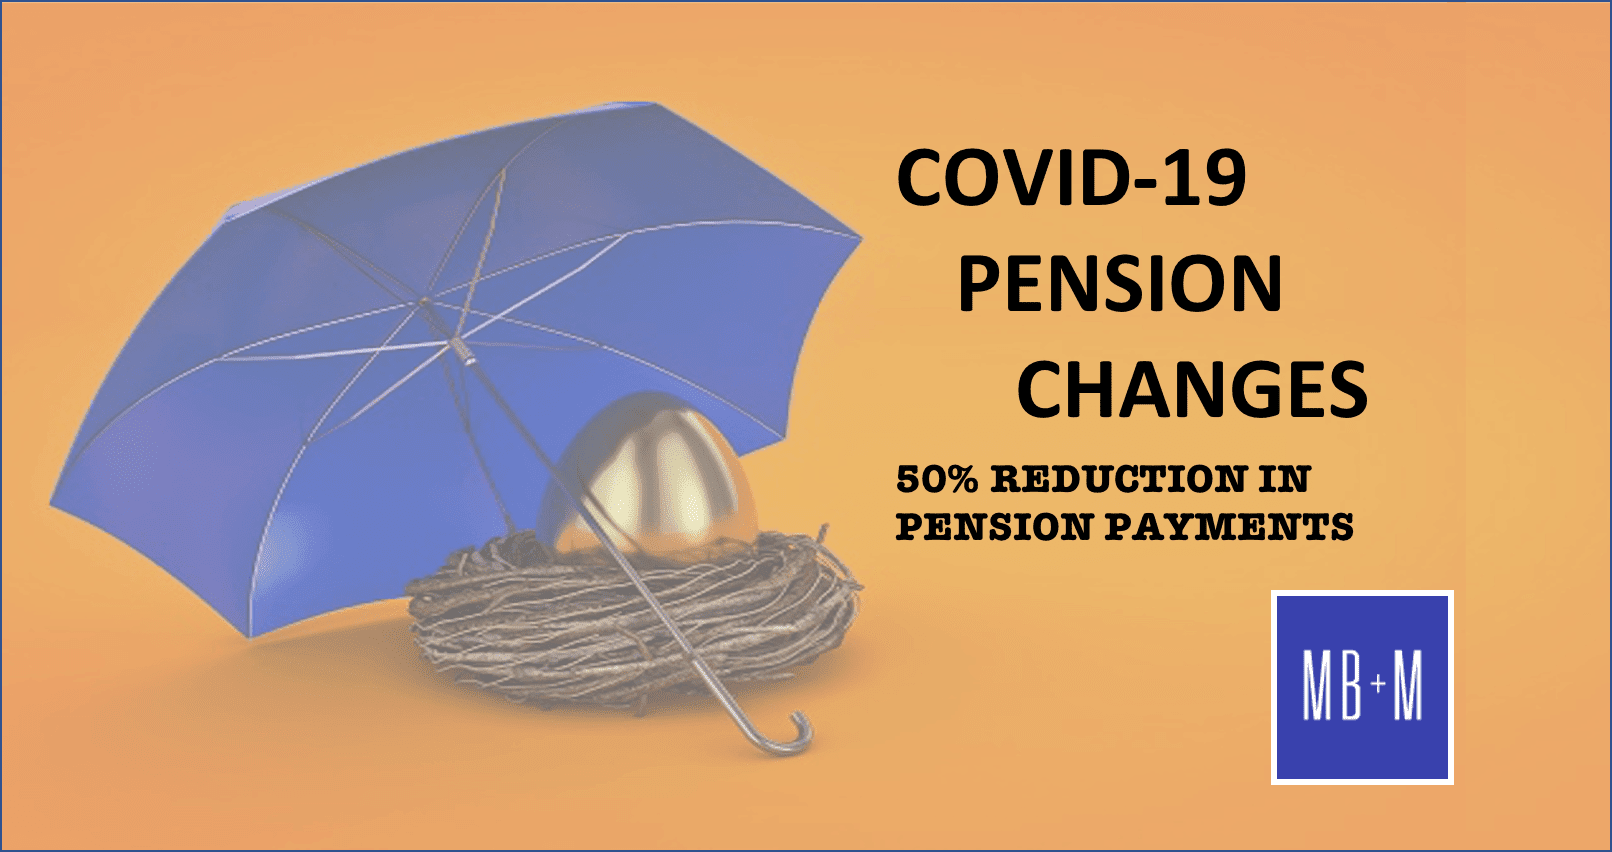 COVID-19 Superannuation Changes To Pensions